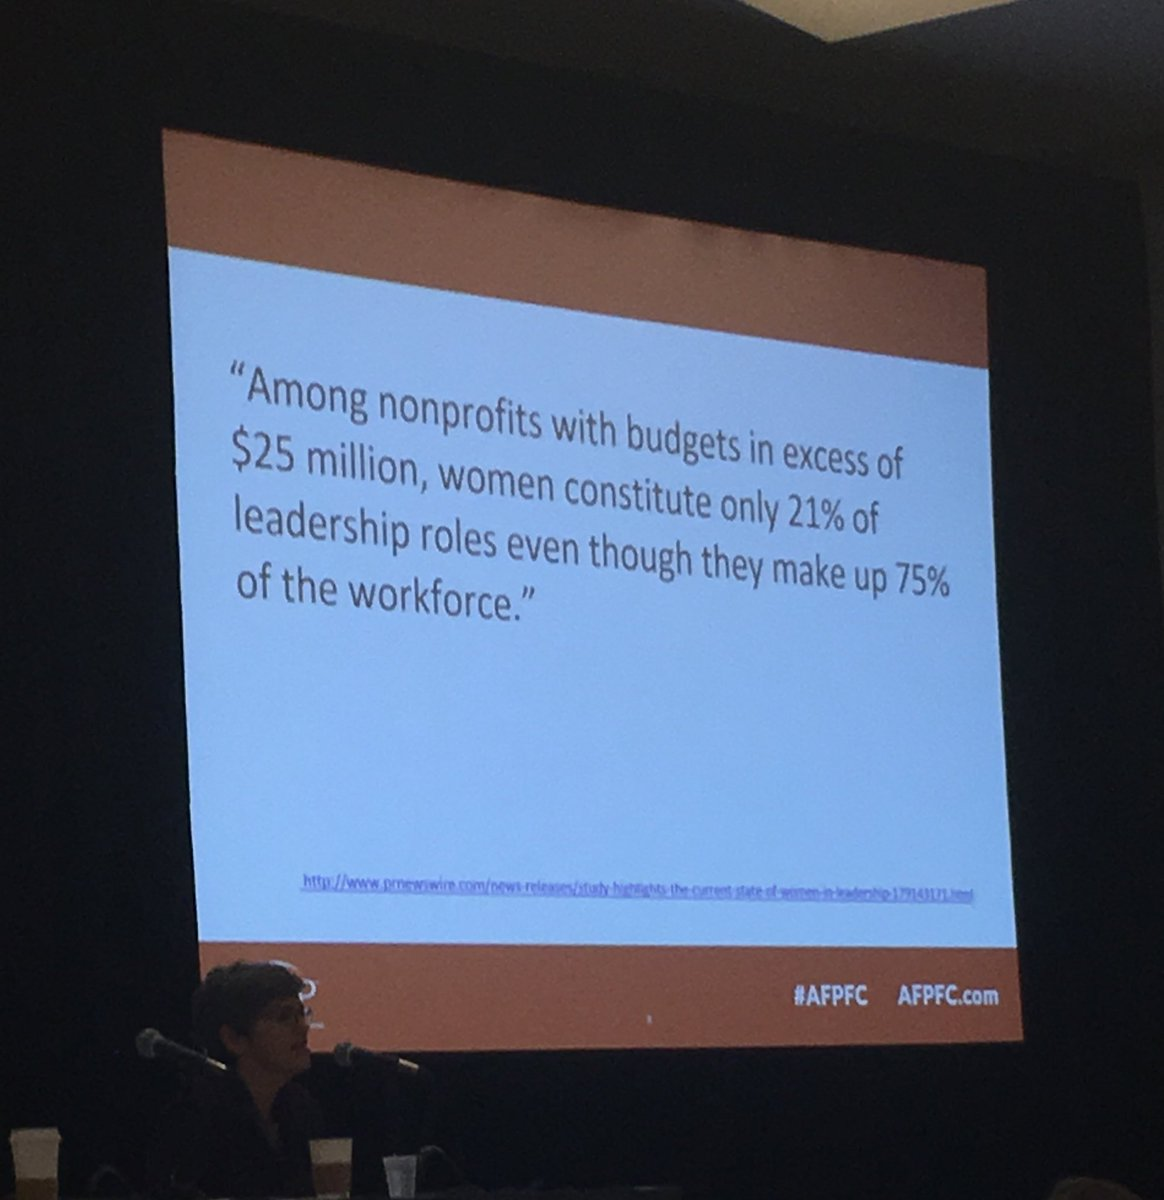 Here is a problem #nonprofits: women are only 21% of leaders but 75% of workforce #LeanInFundraising #afpfc https://t.co/ZbNgmFD8gP